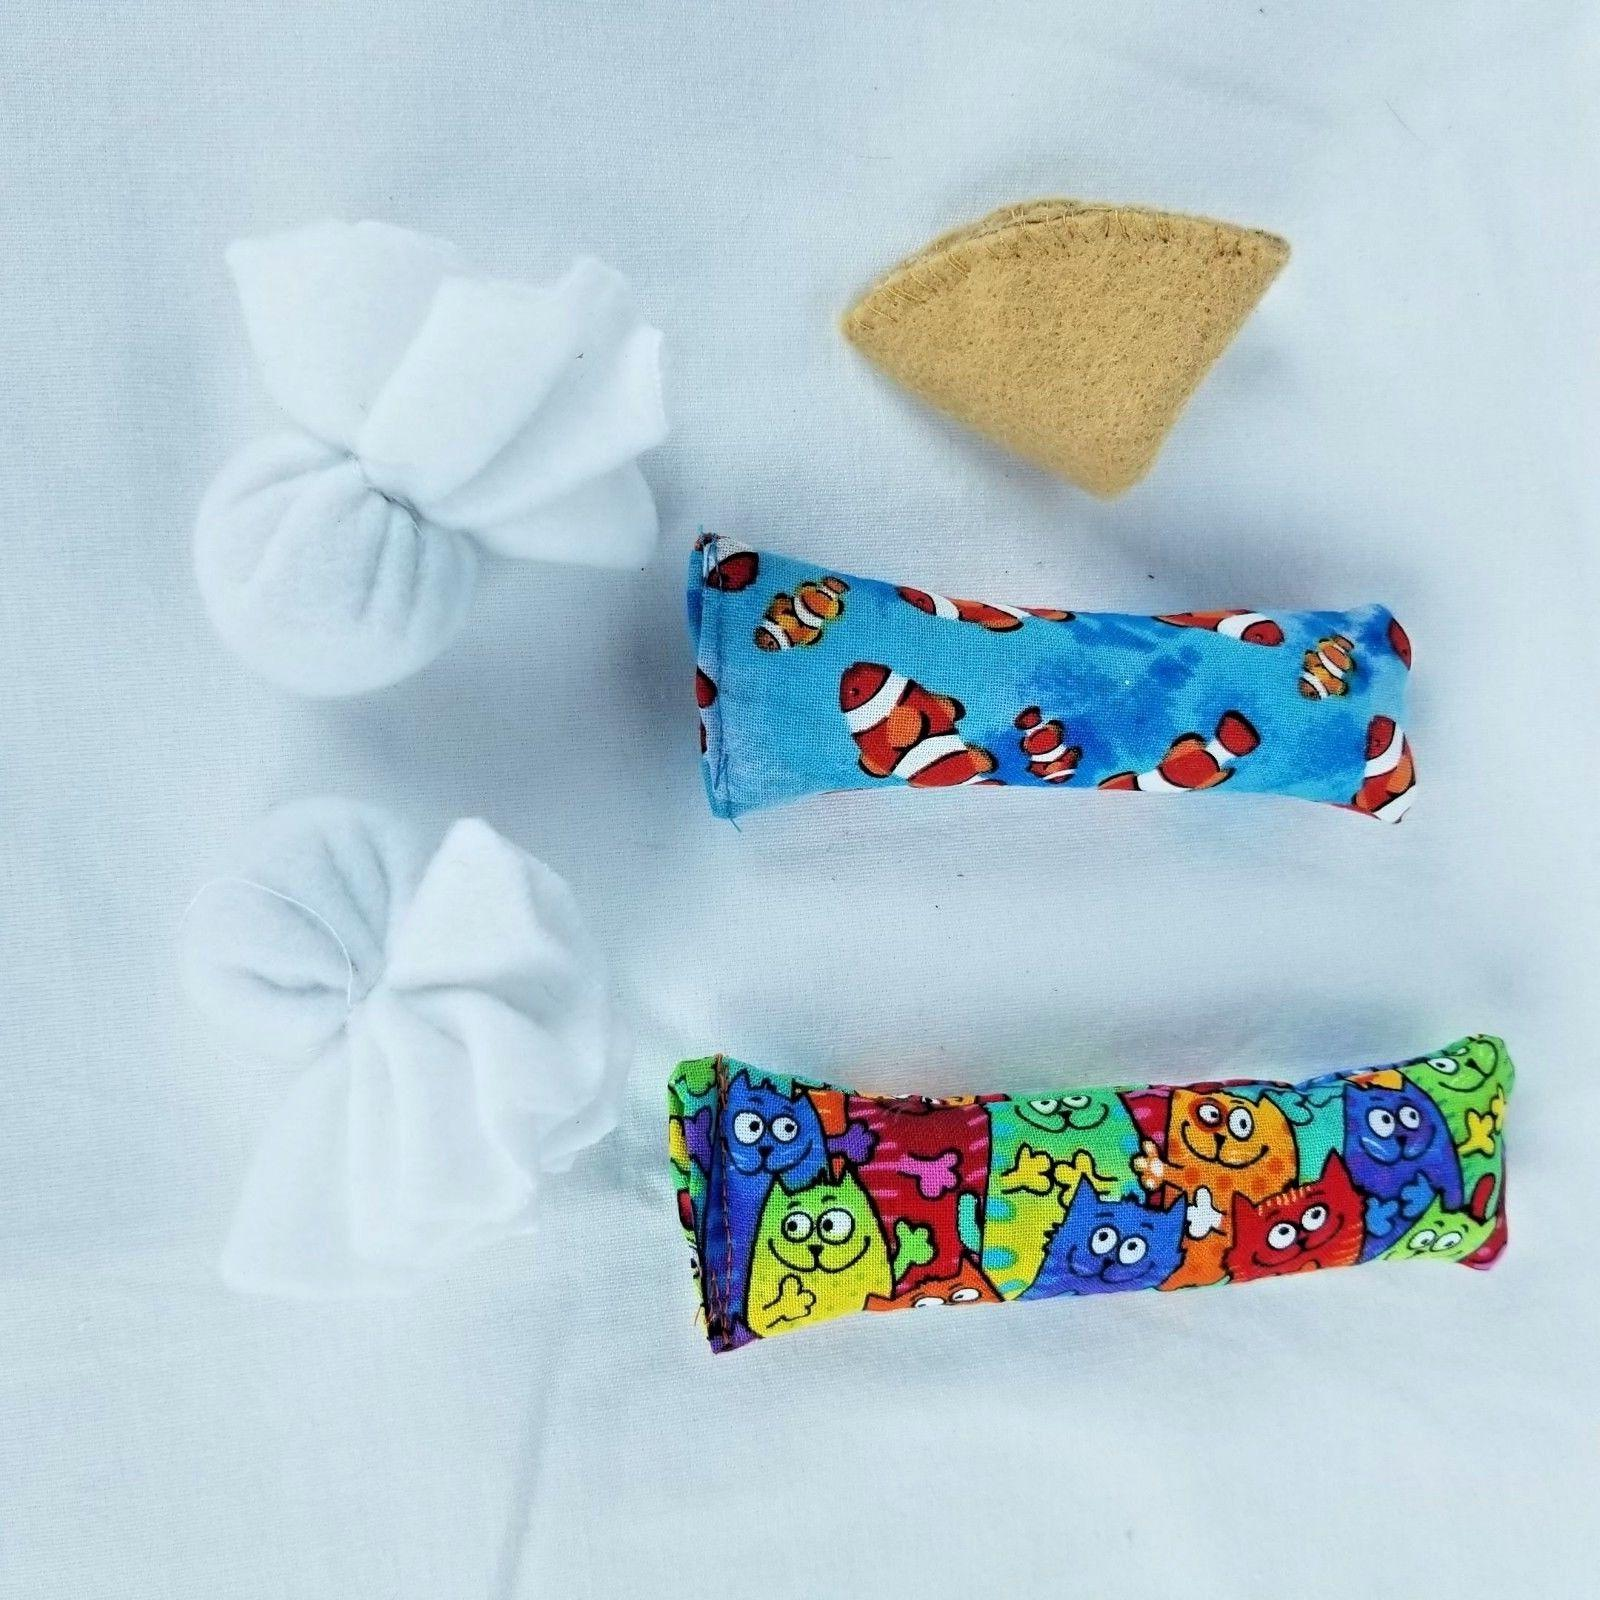 5 Handmade Cat Pillow Toys - Cat Tested & Approved, Filled w